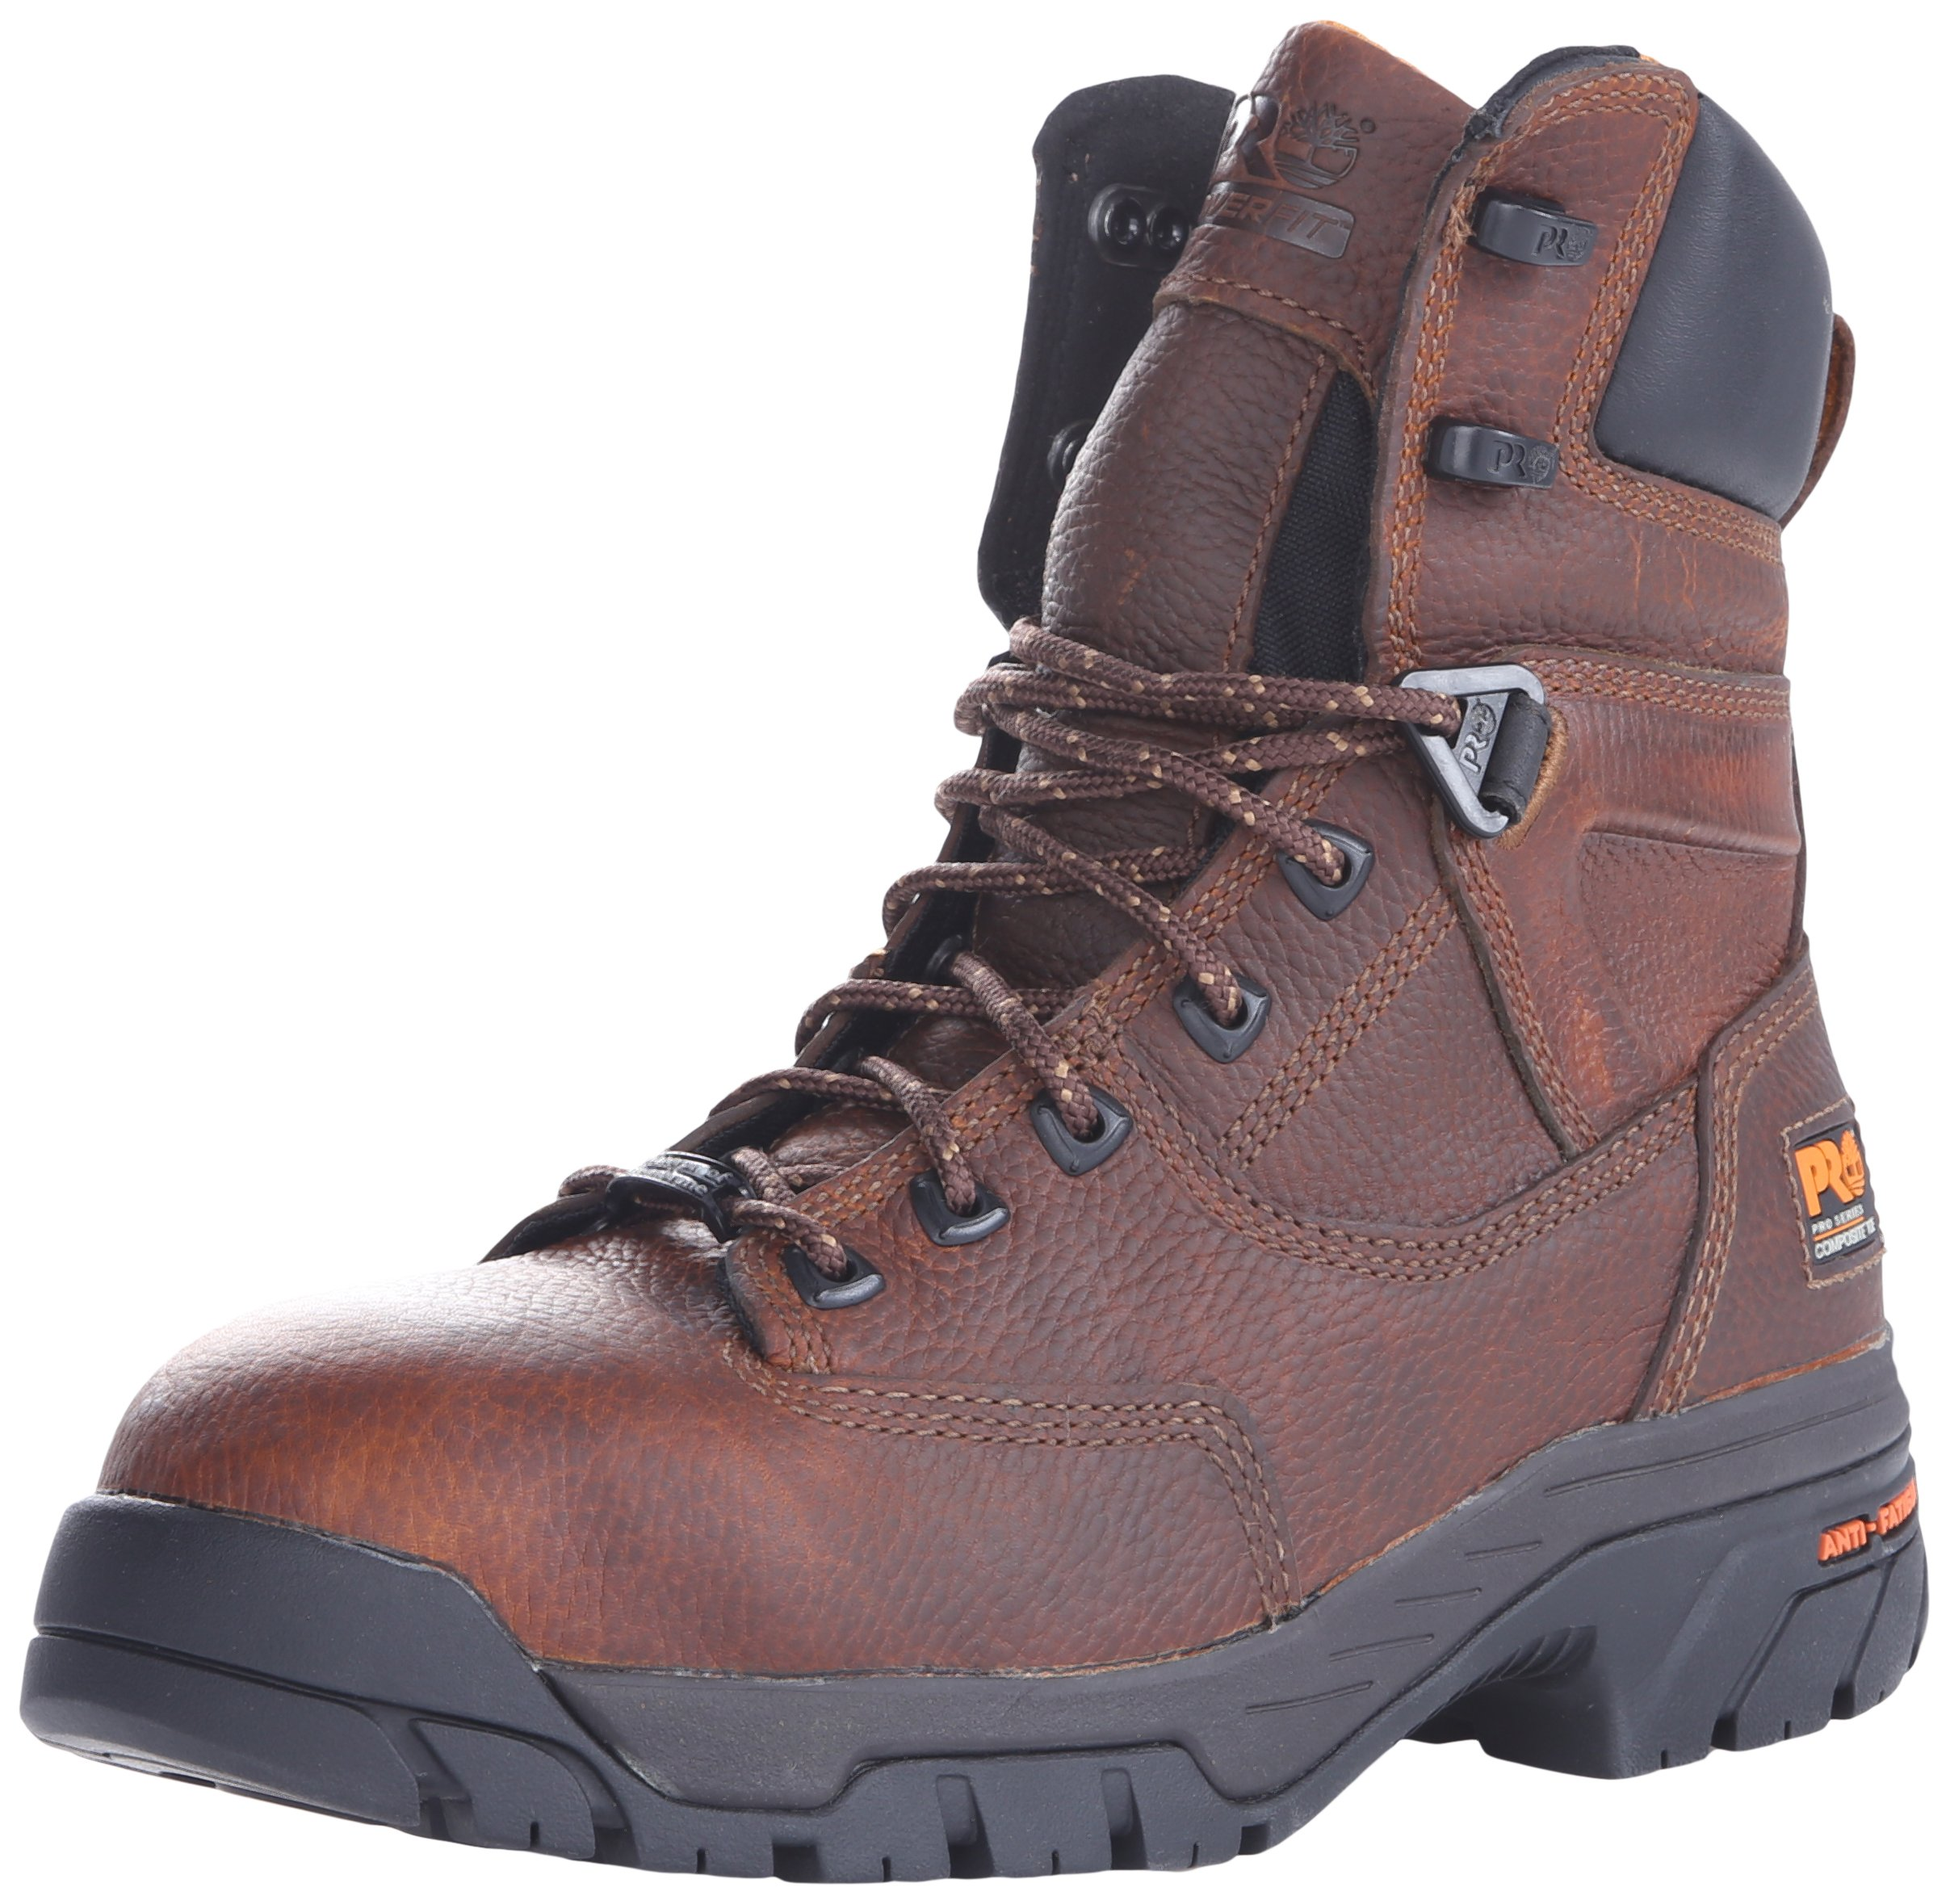 Timberland PRO Men's Helix 8 Inch Comp Toe Work Boot,Brown,12 M US